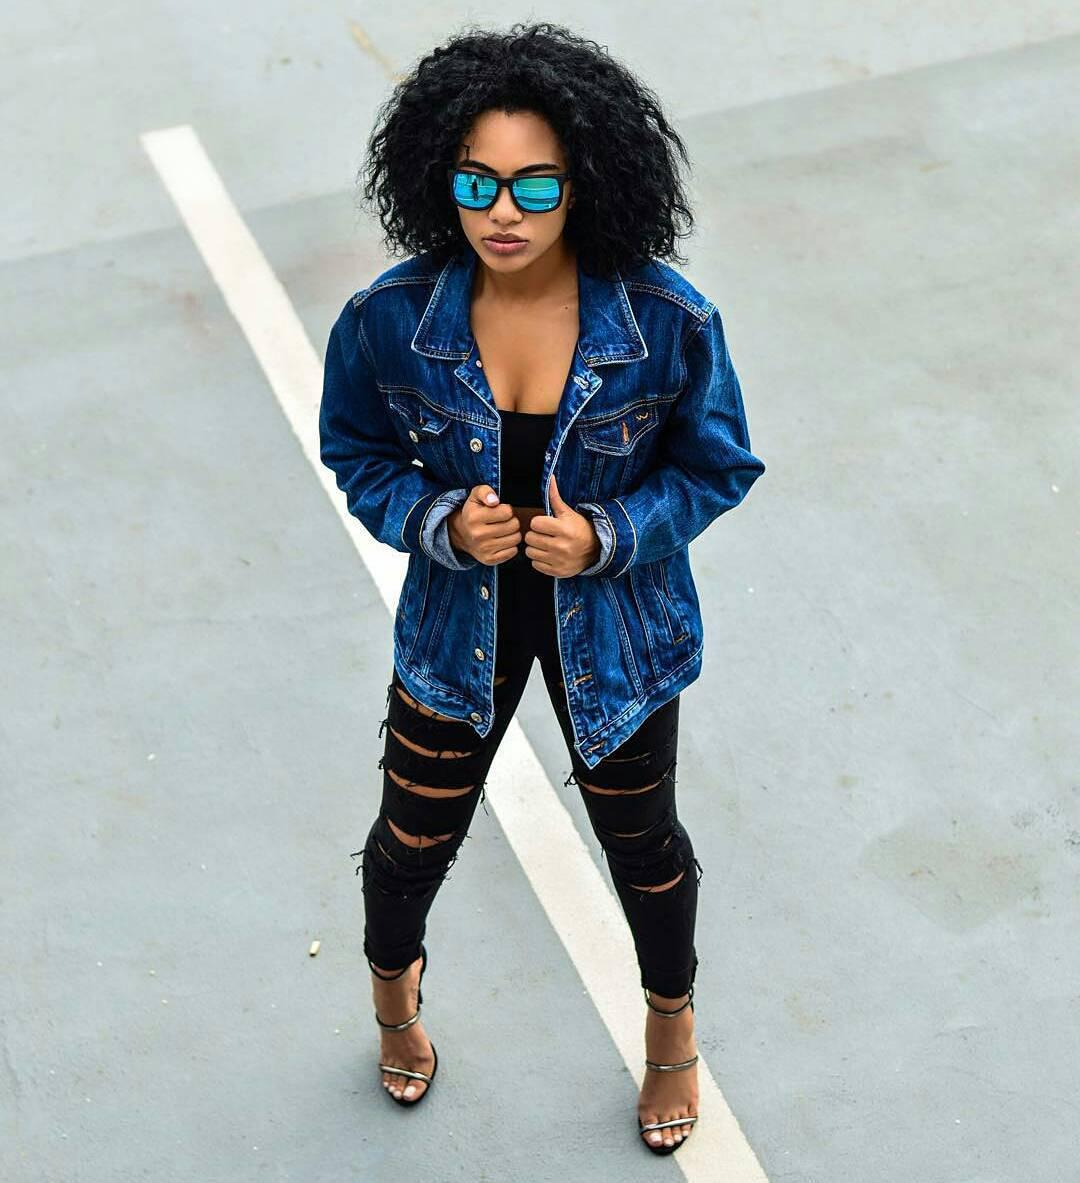 Black Girl Outfit Ideas: Cool Denim Swag Outfit That Looks Cool On Any Black Girl